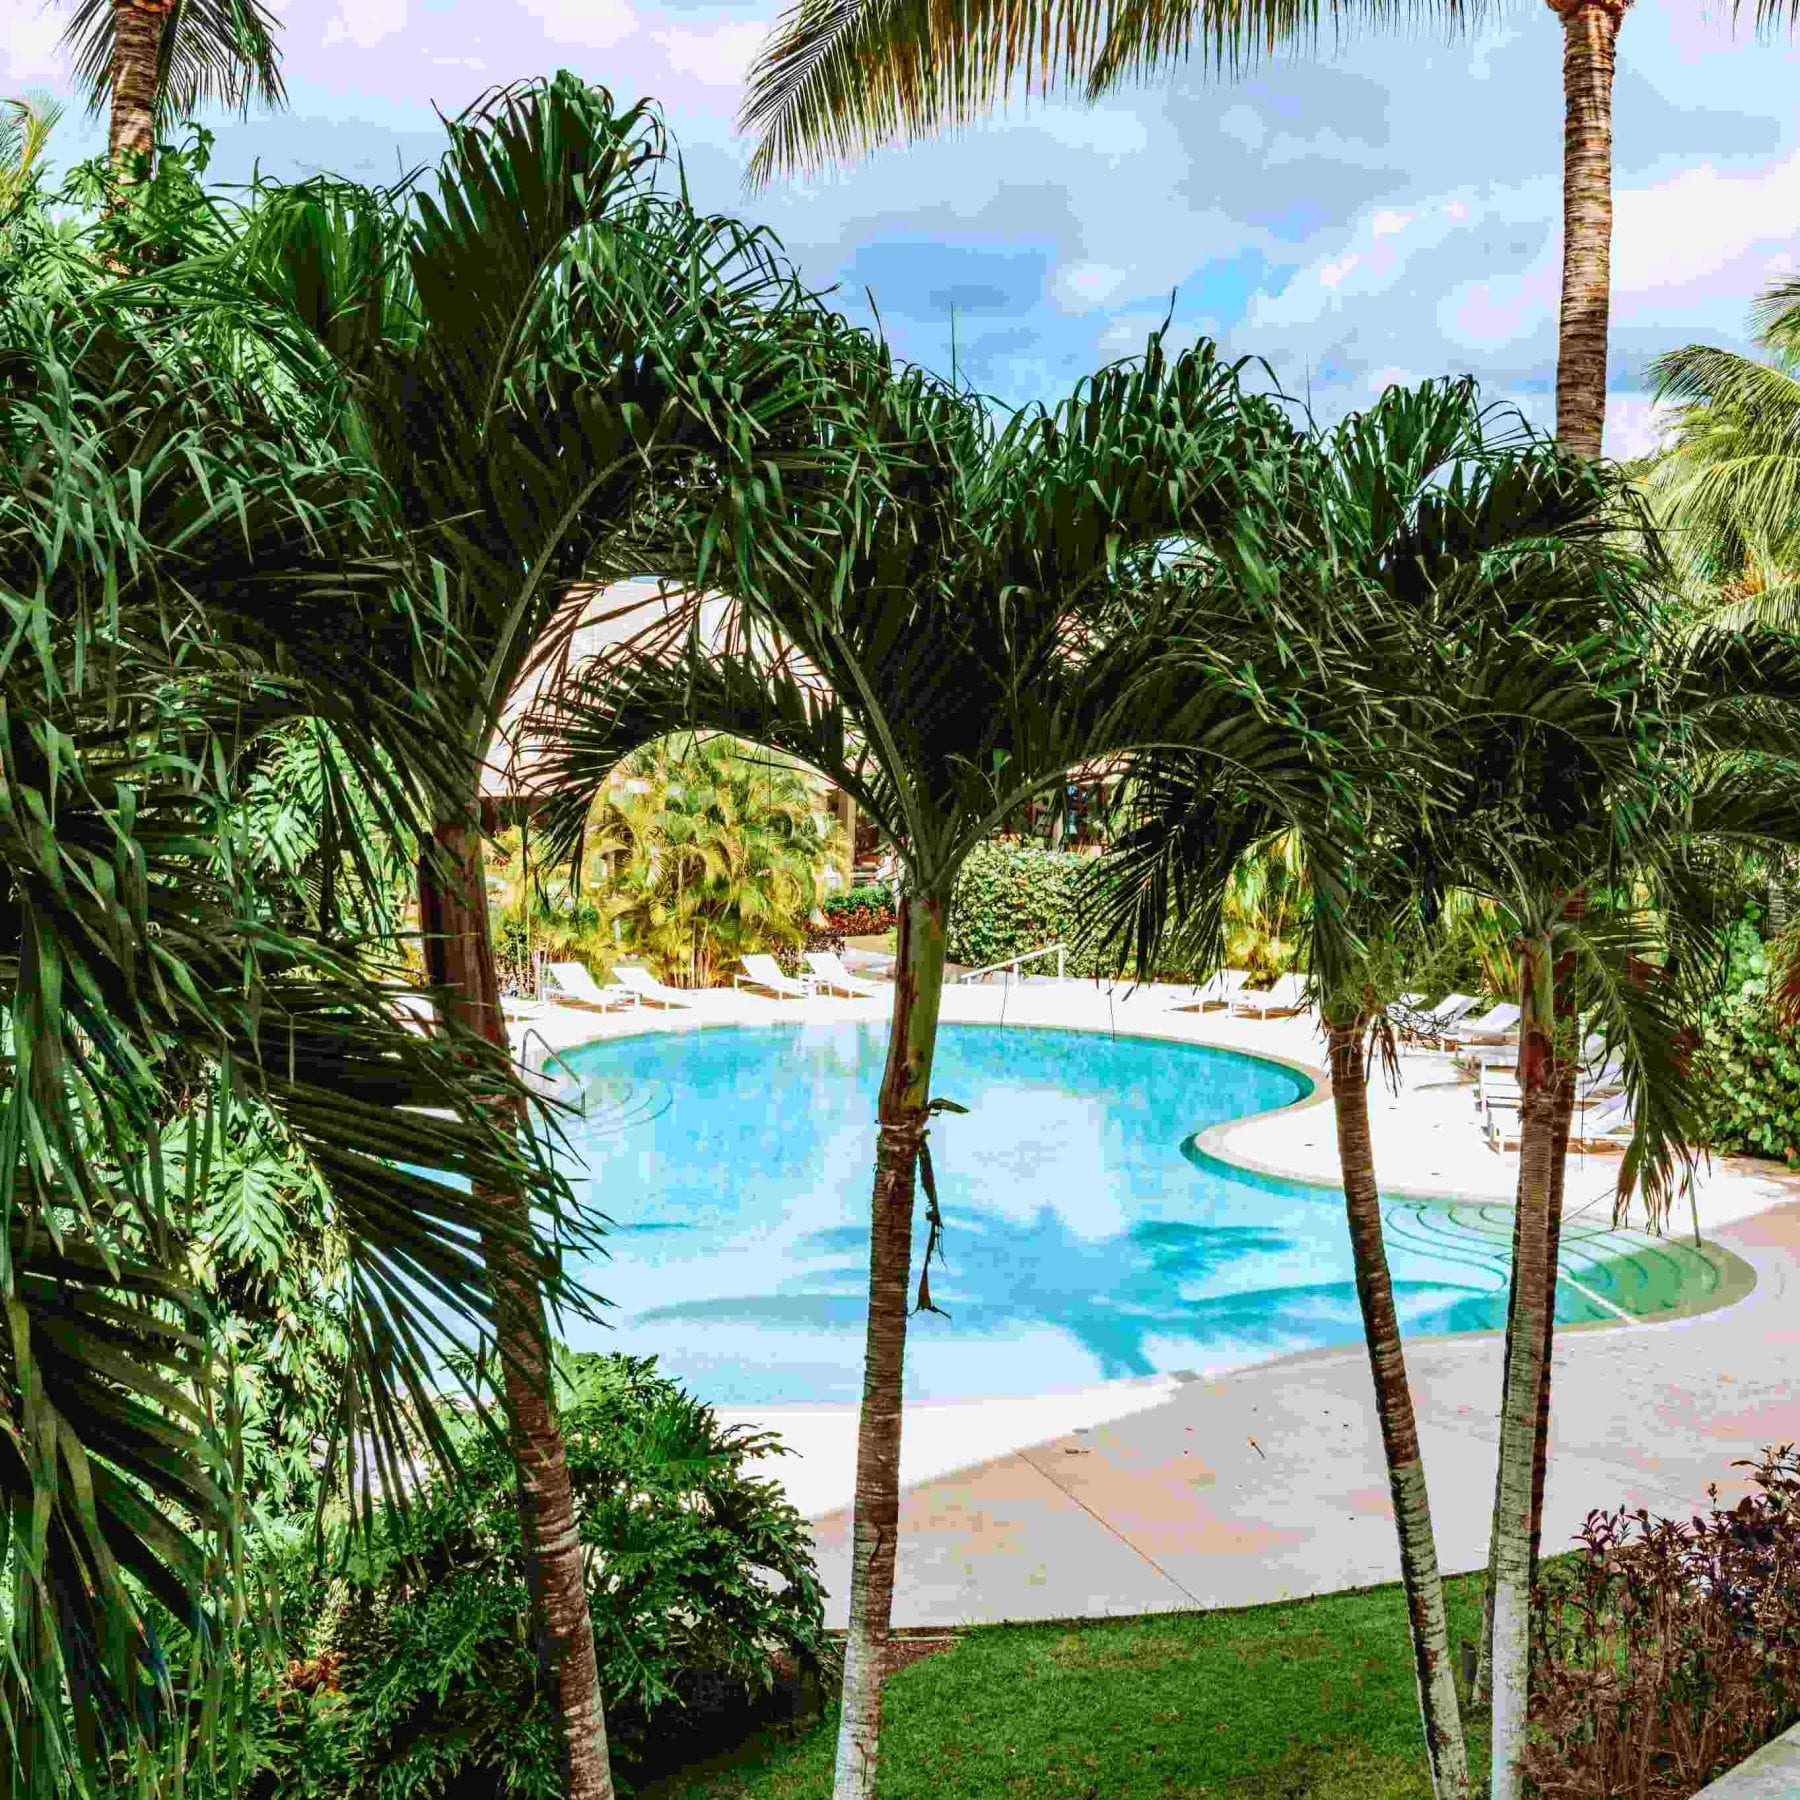 tropical resort style pool with palm trees